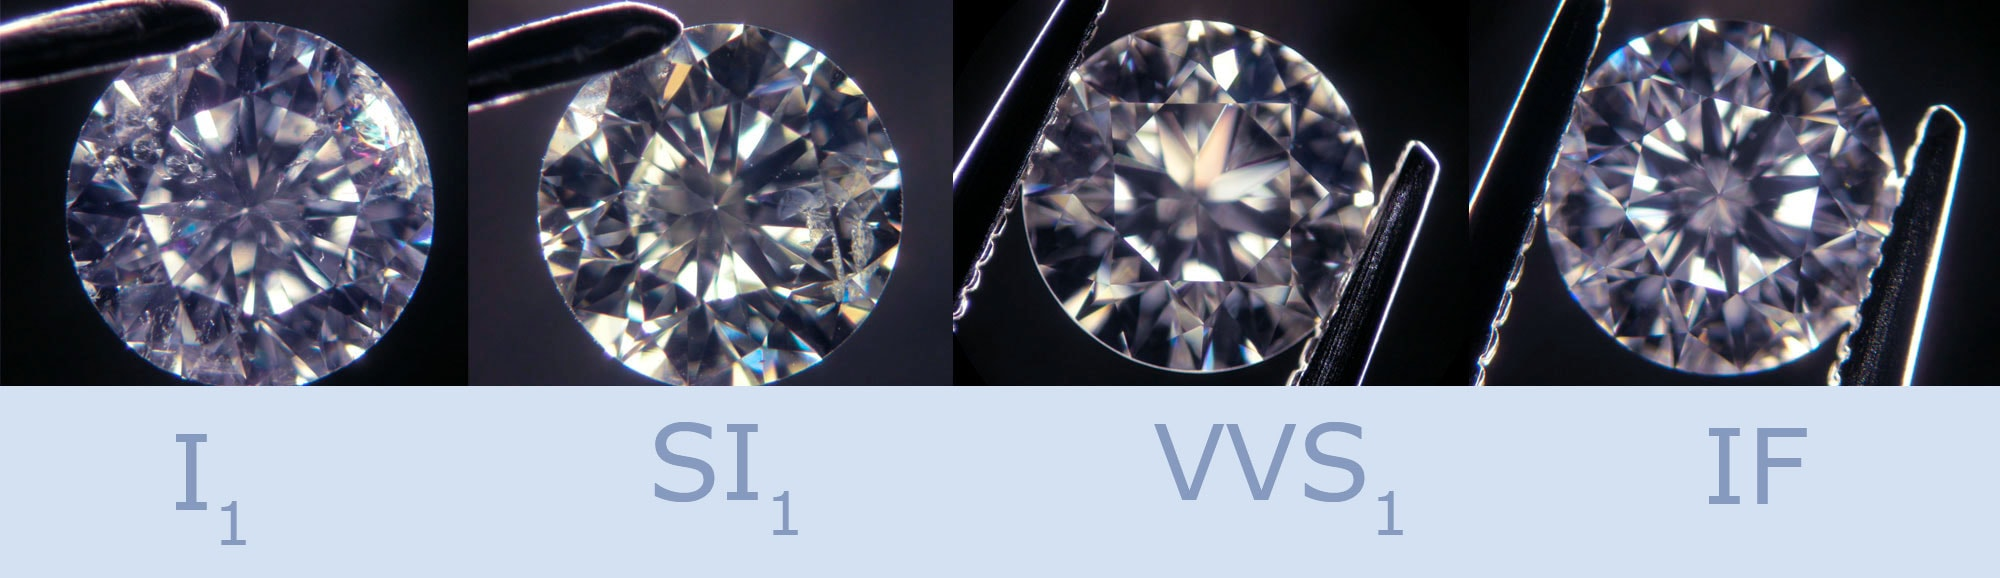 diamond clarity scale: from FL to I1, I2, I3